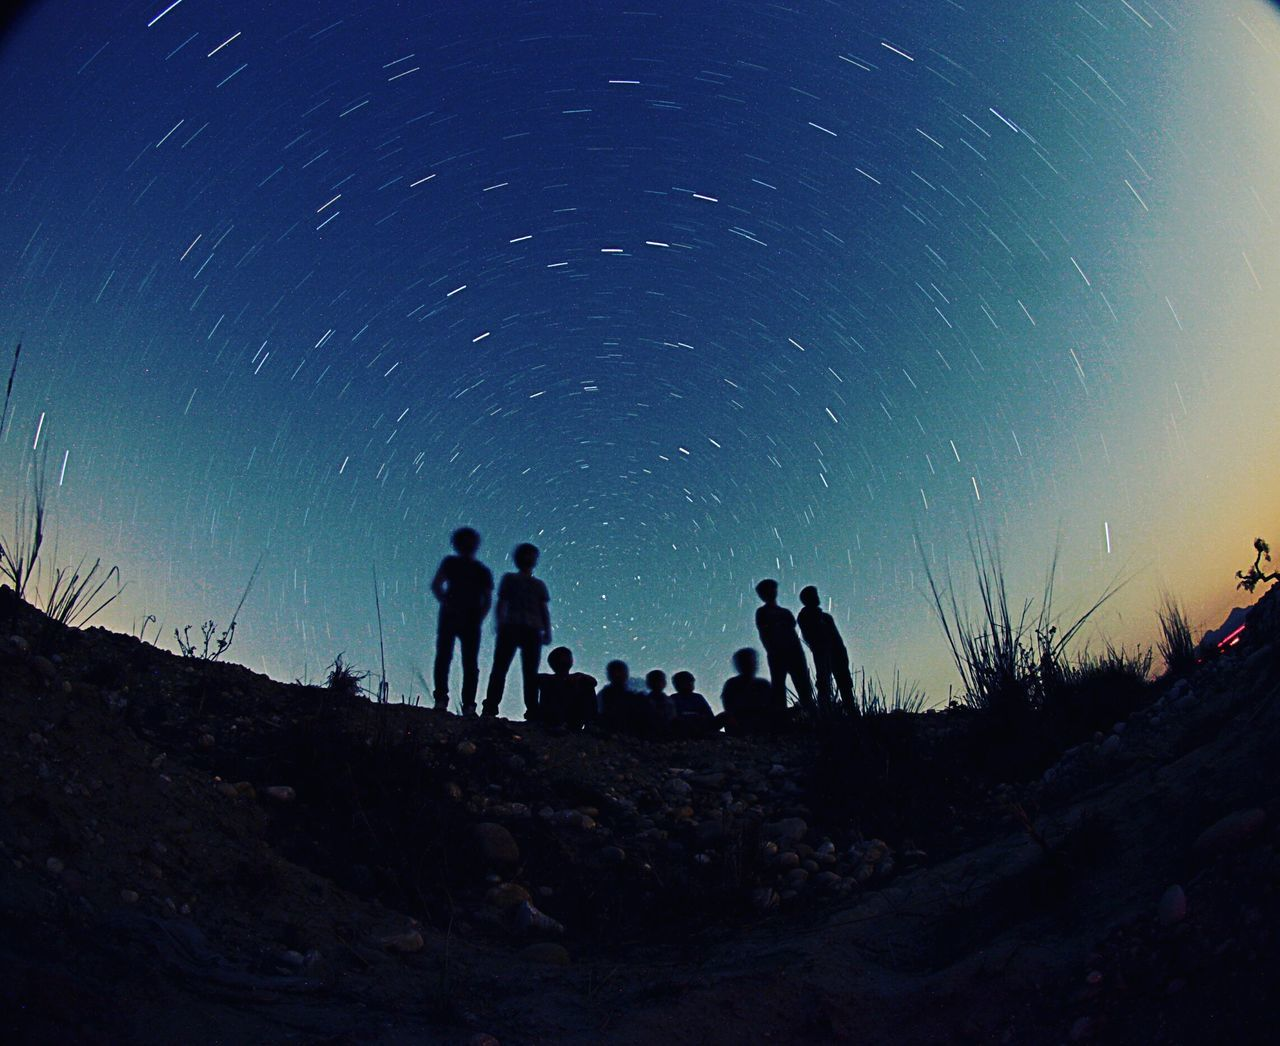 Fish-Eye View Of Silhouette People On Field Against Star Trails